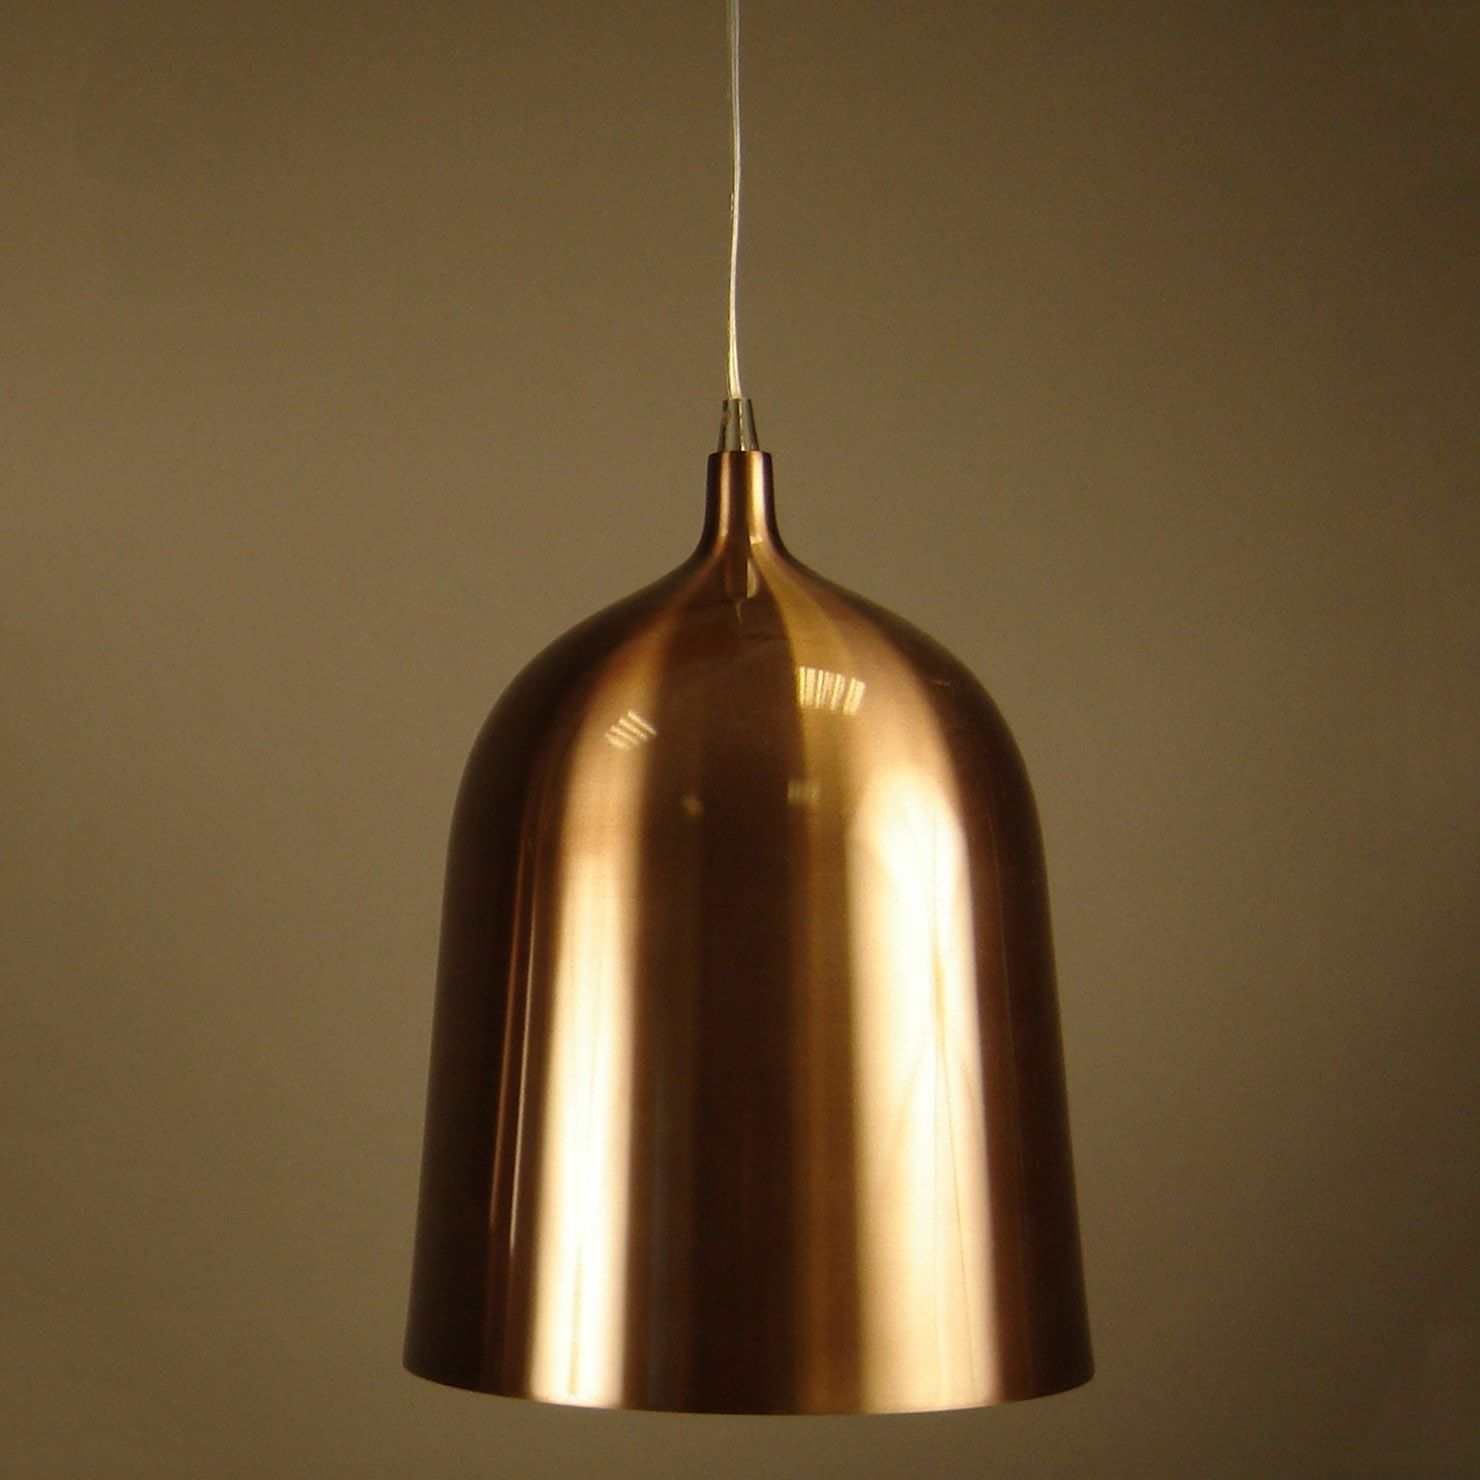 Aluminor Bottle Pendant Light 216 28 Cm Copper Achica Pendant Light Bottle Pendant Light Light